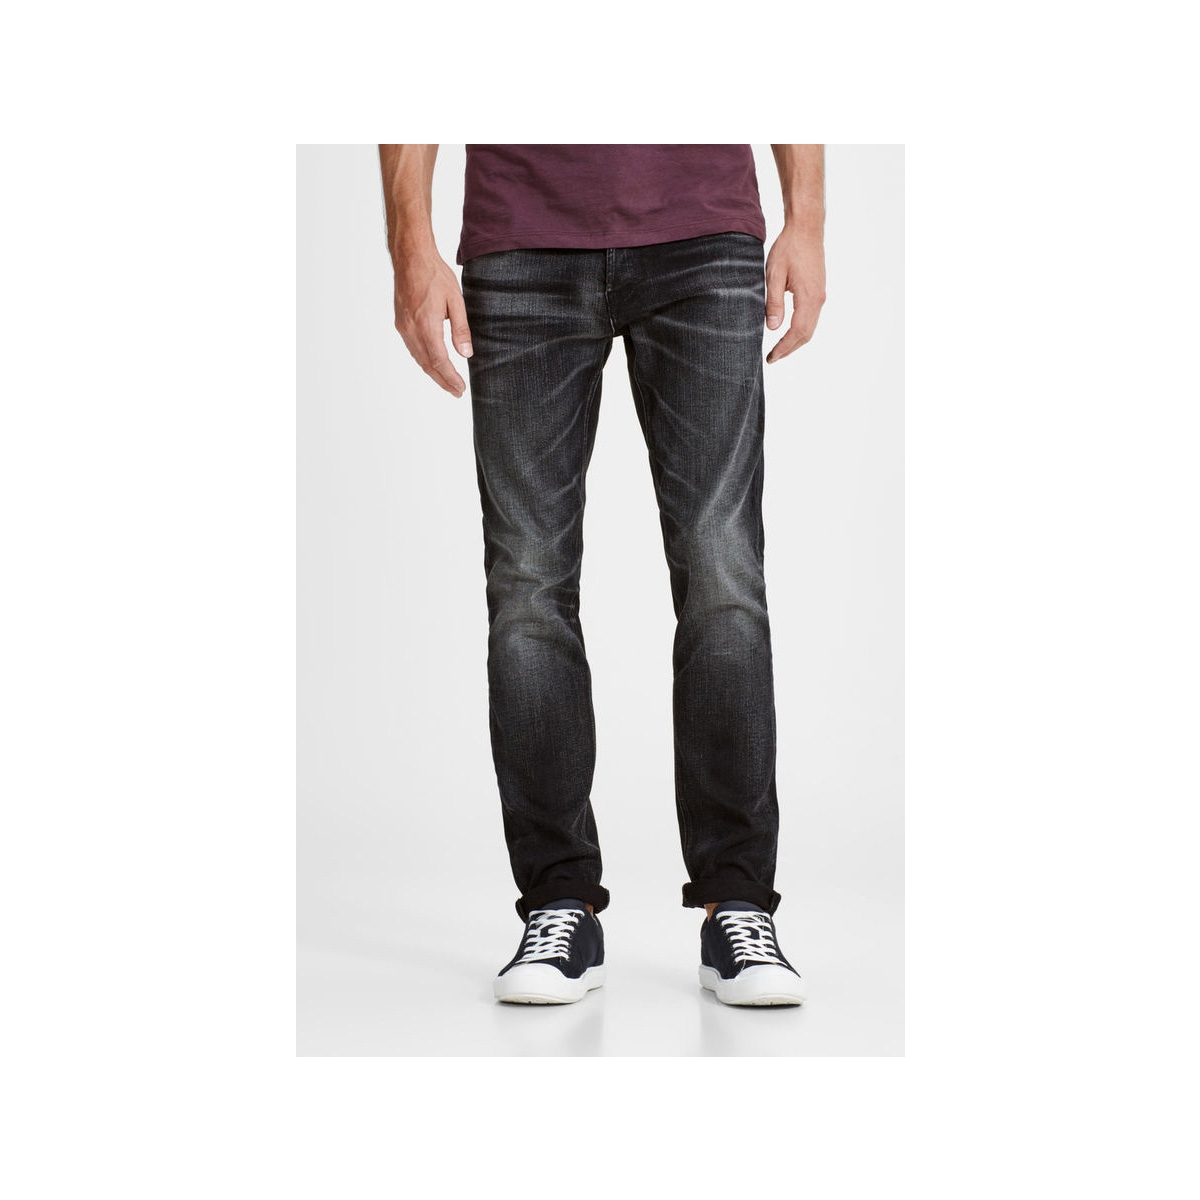 jjitim jjoriginal jj 023 noos aw12 12125712 jack & jones jeans black denim